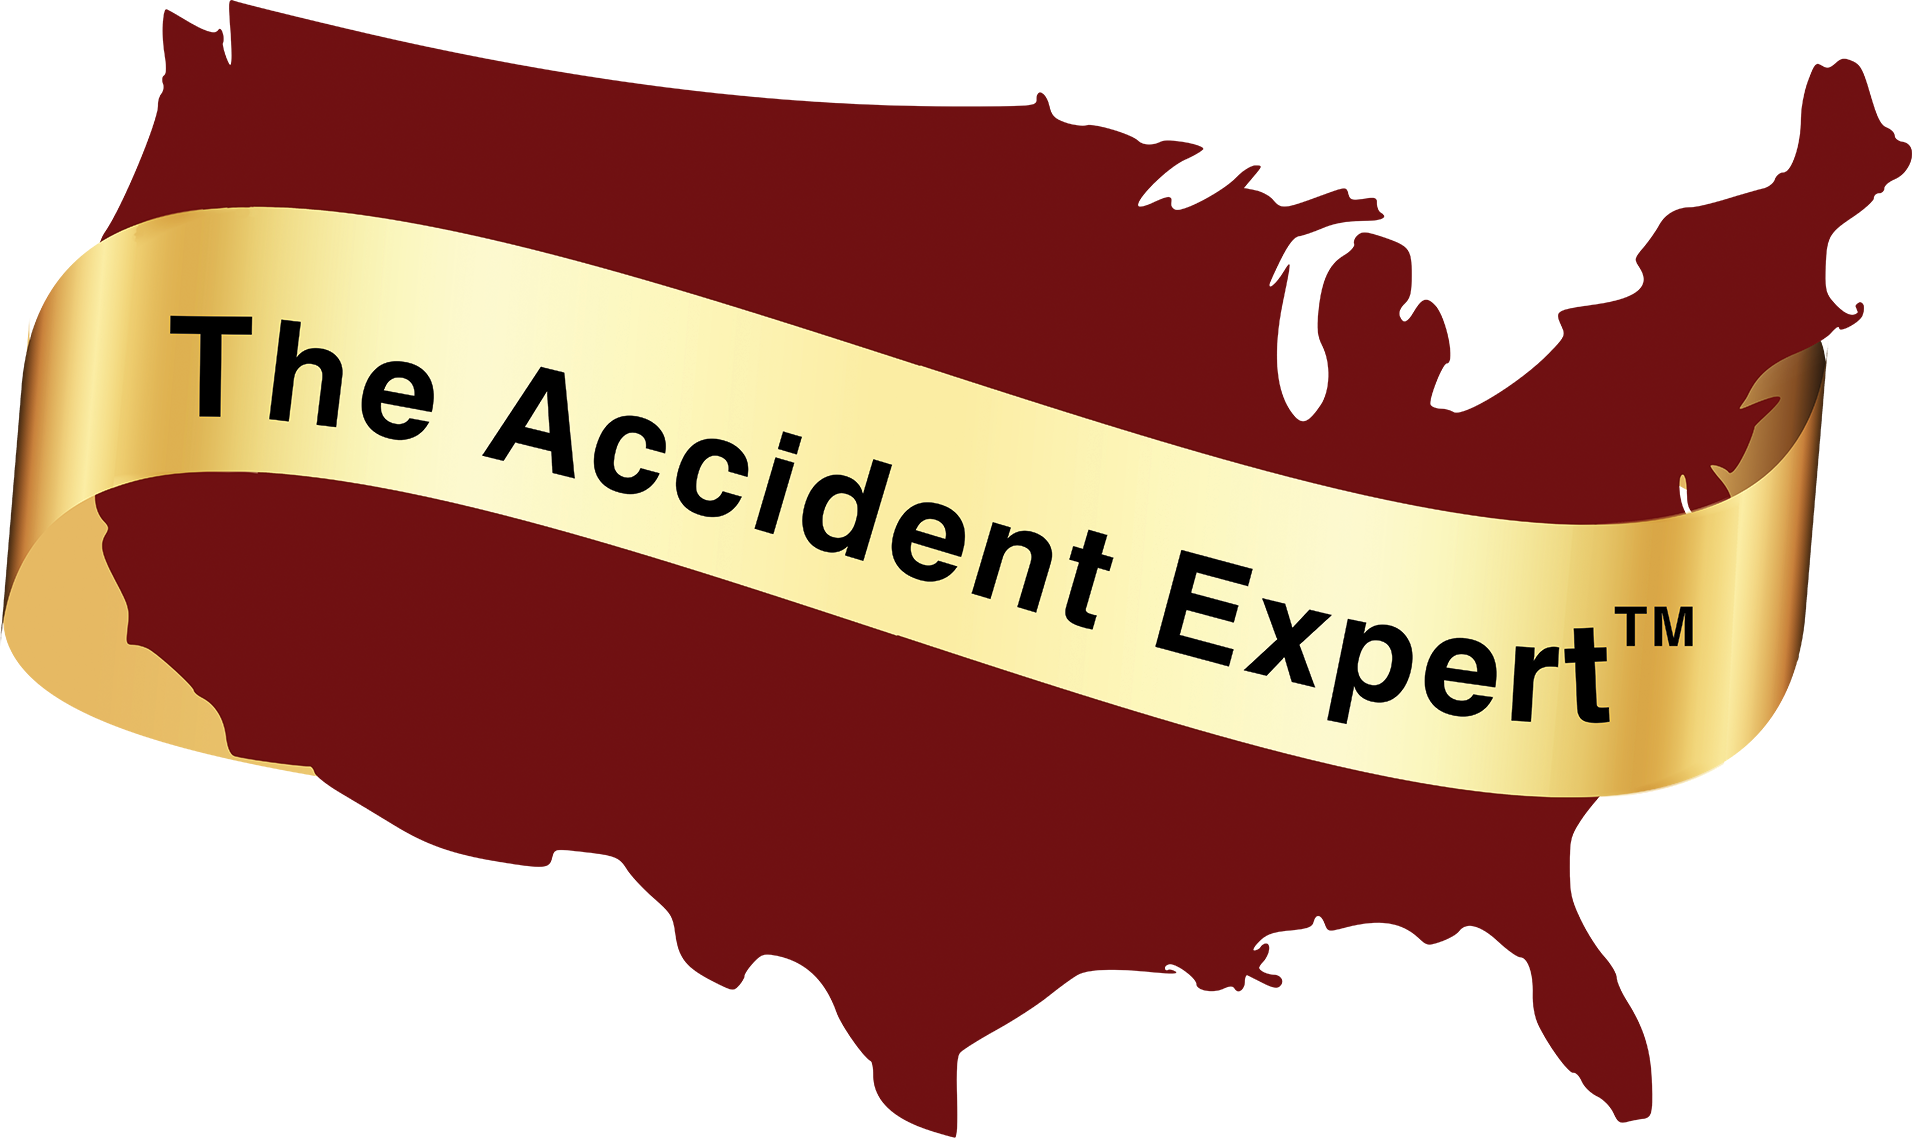 The Accident Expert